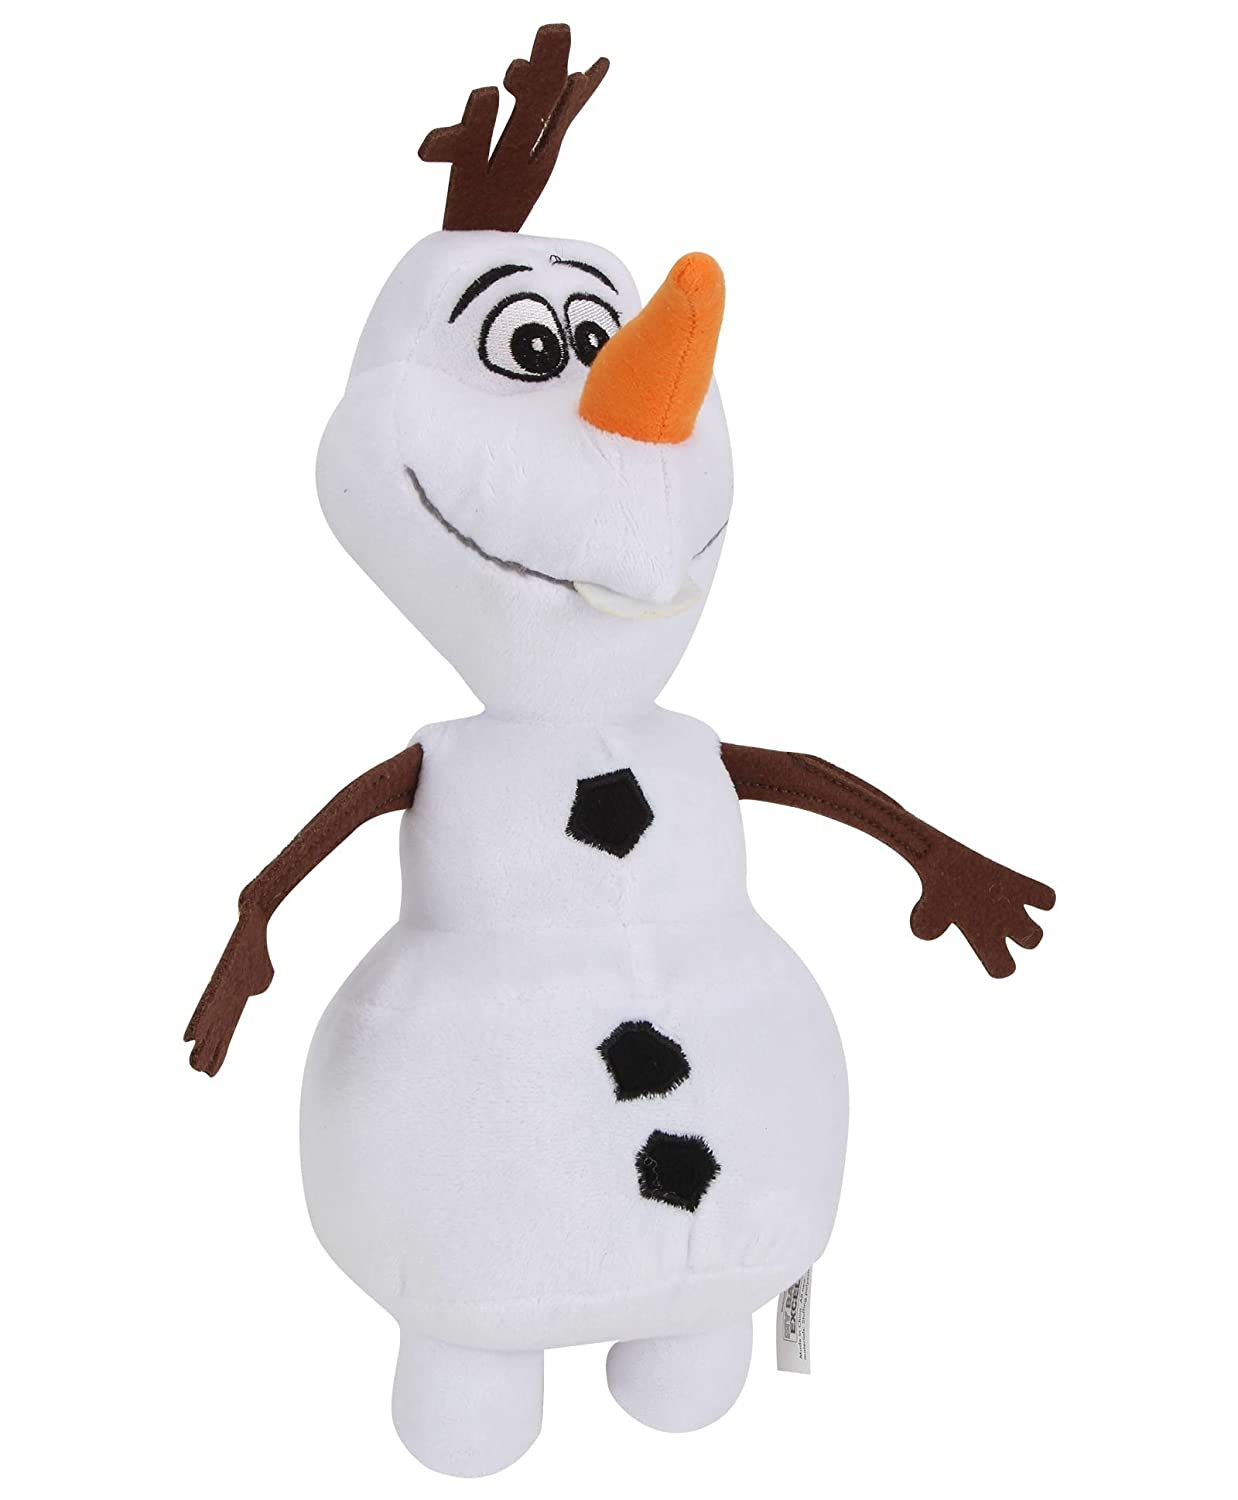 Buy Disney Frozen Olaf Doll Online at Low Prices in India - Amazon.in